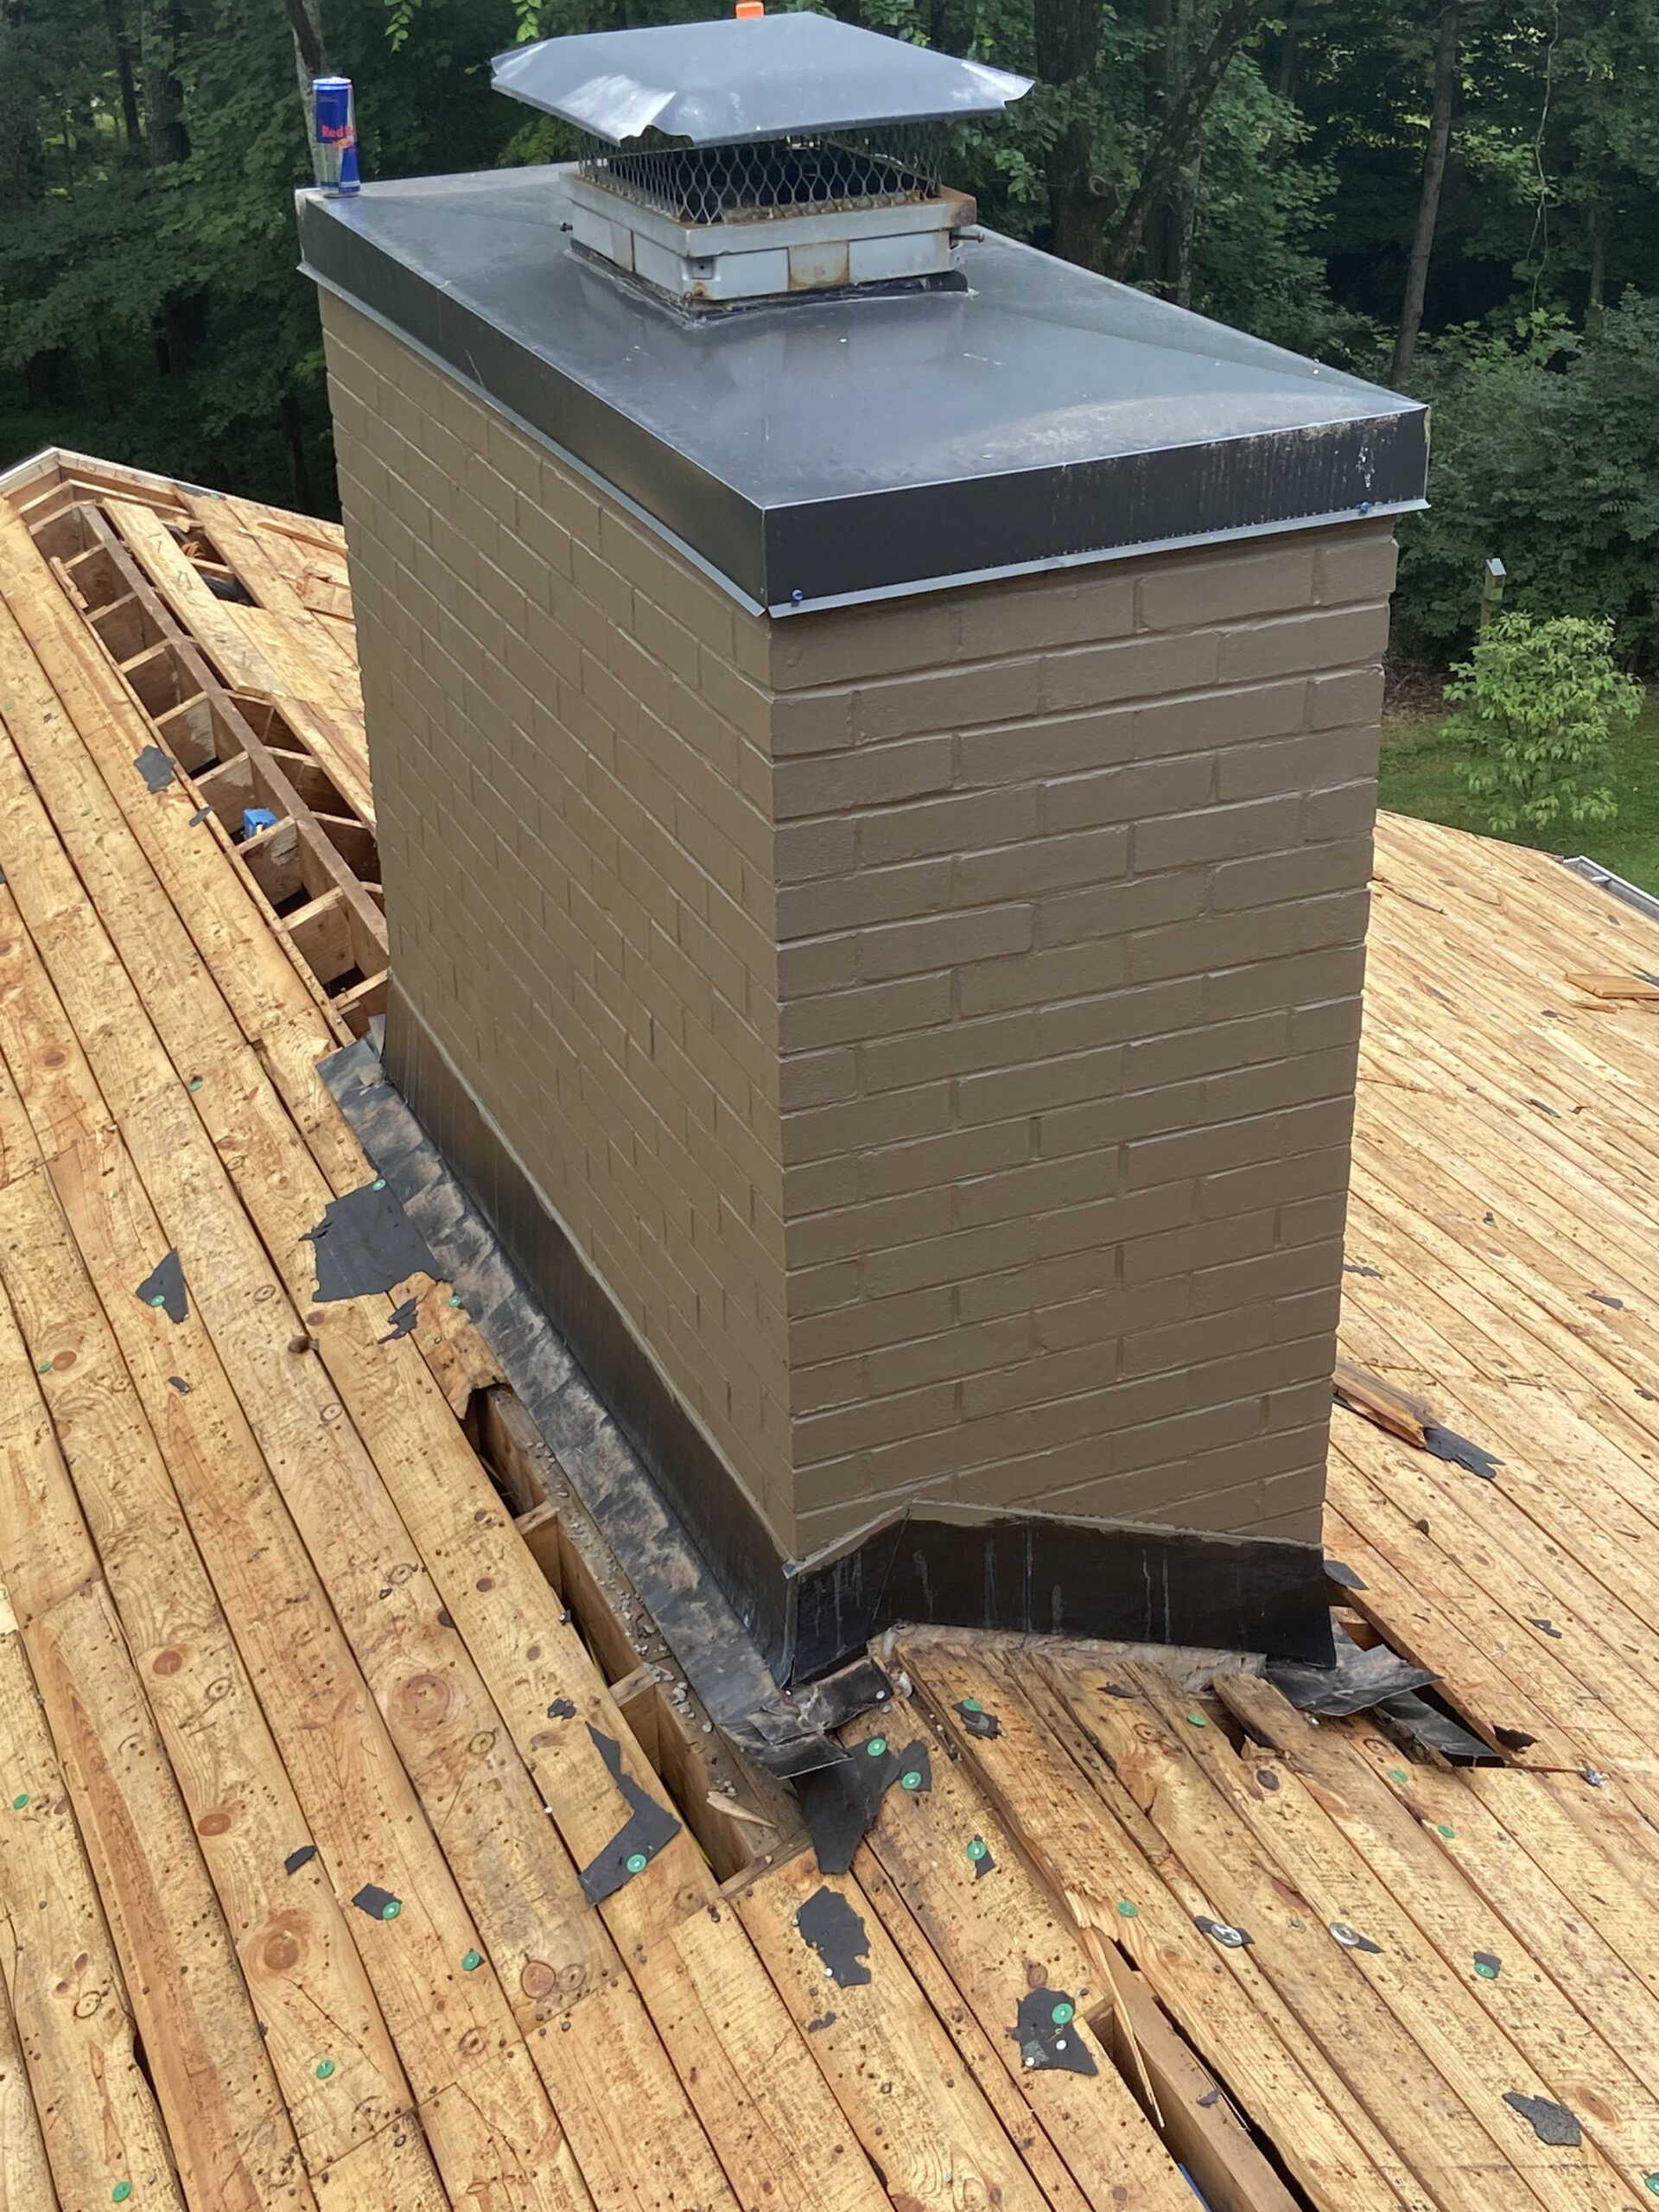 This is the view of the ridge with no shingles and a view of the chimney cap.